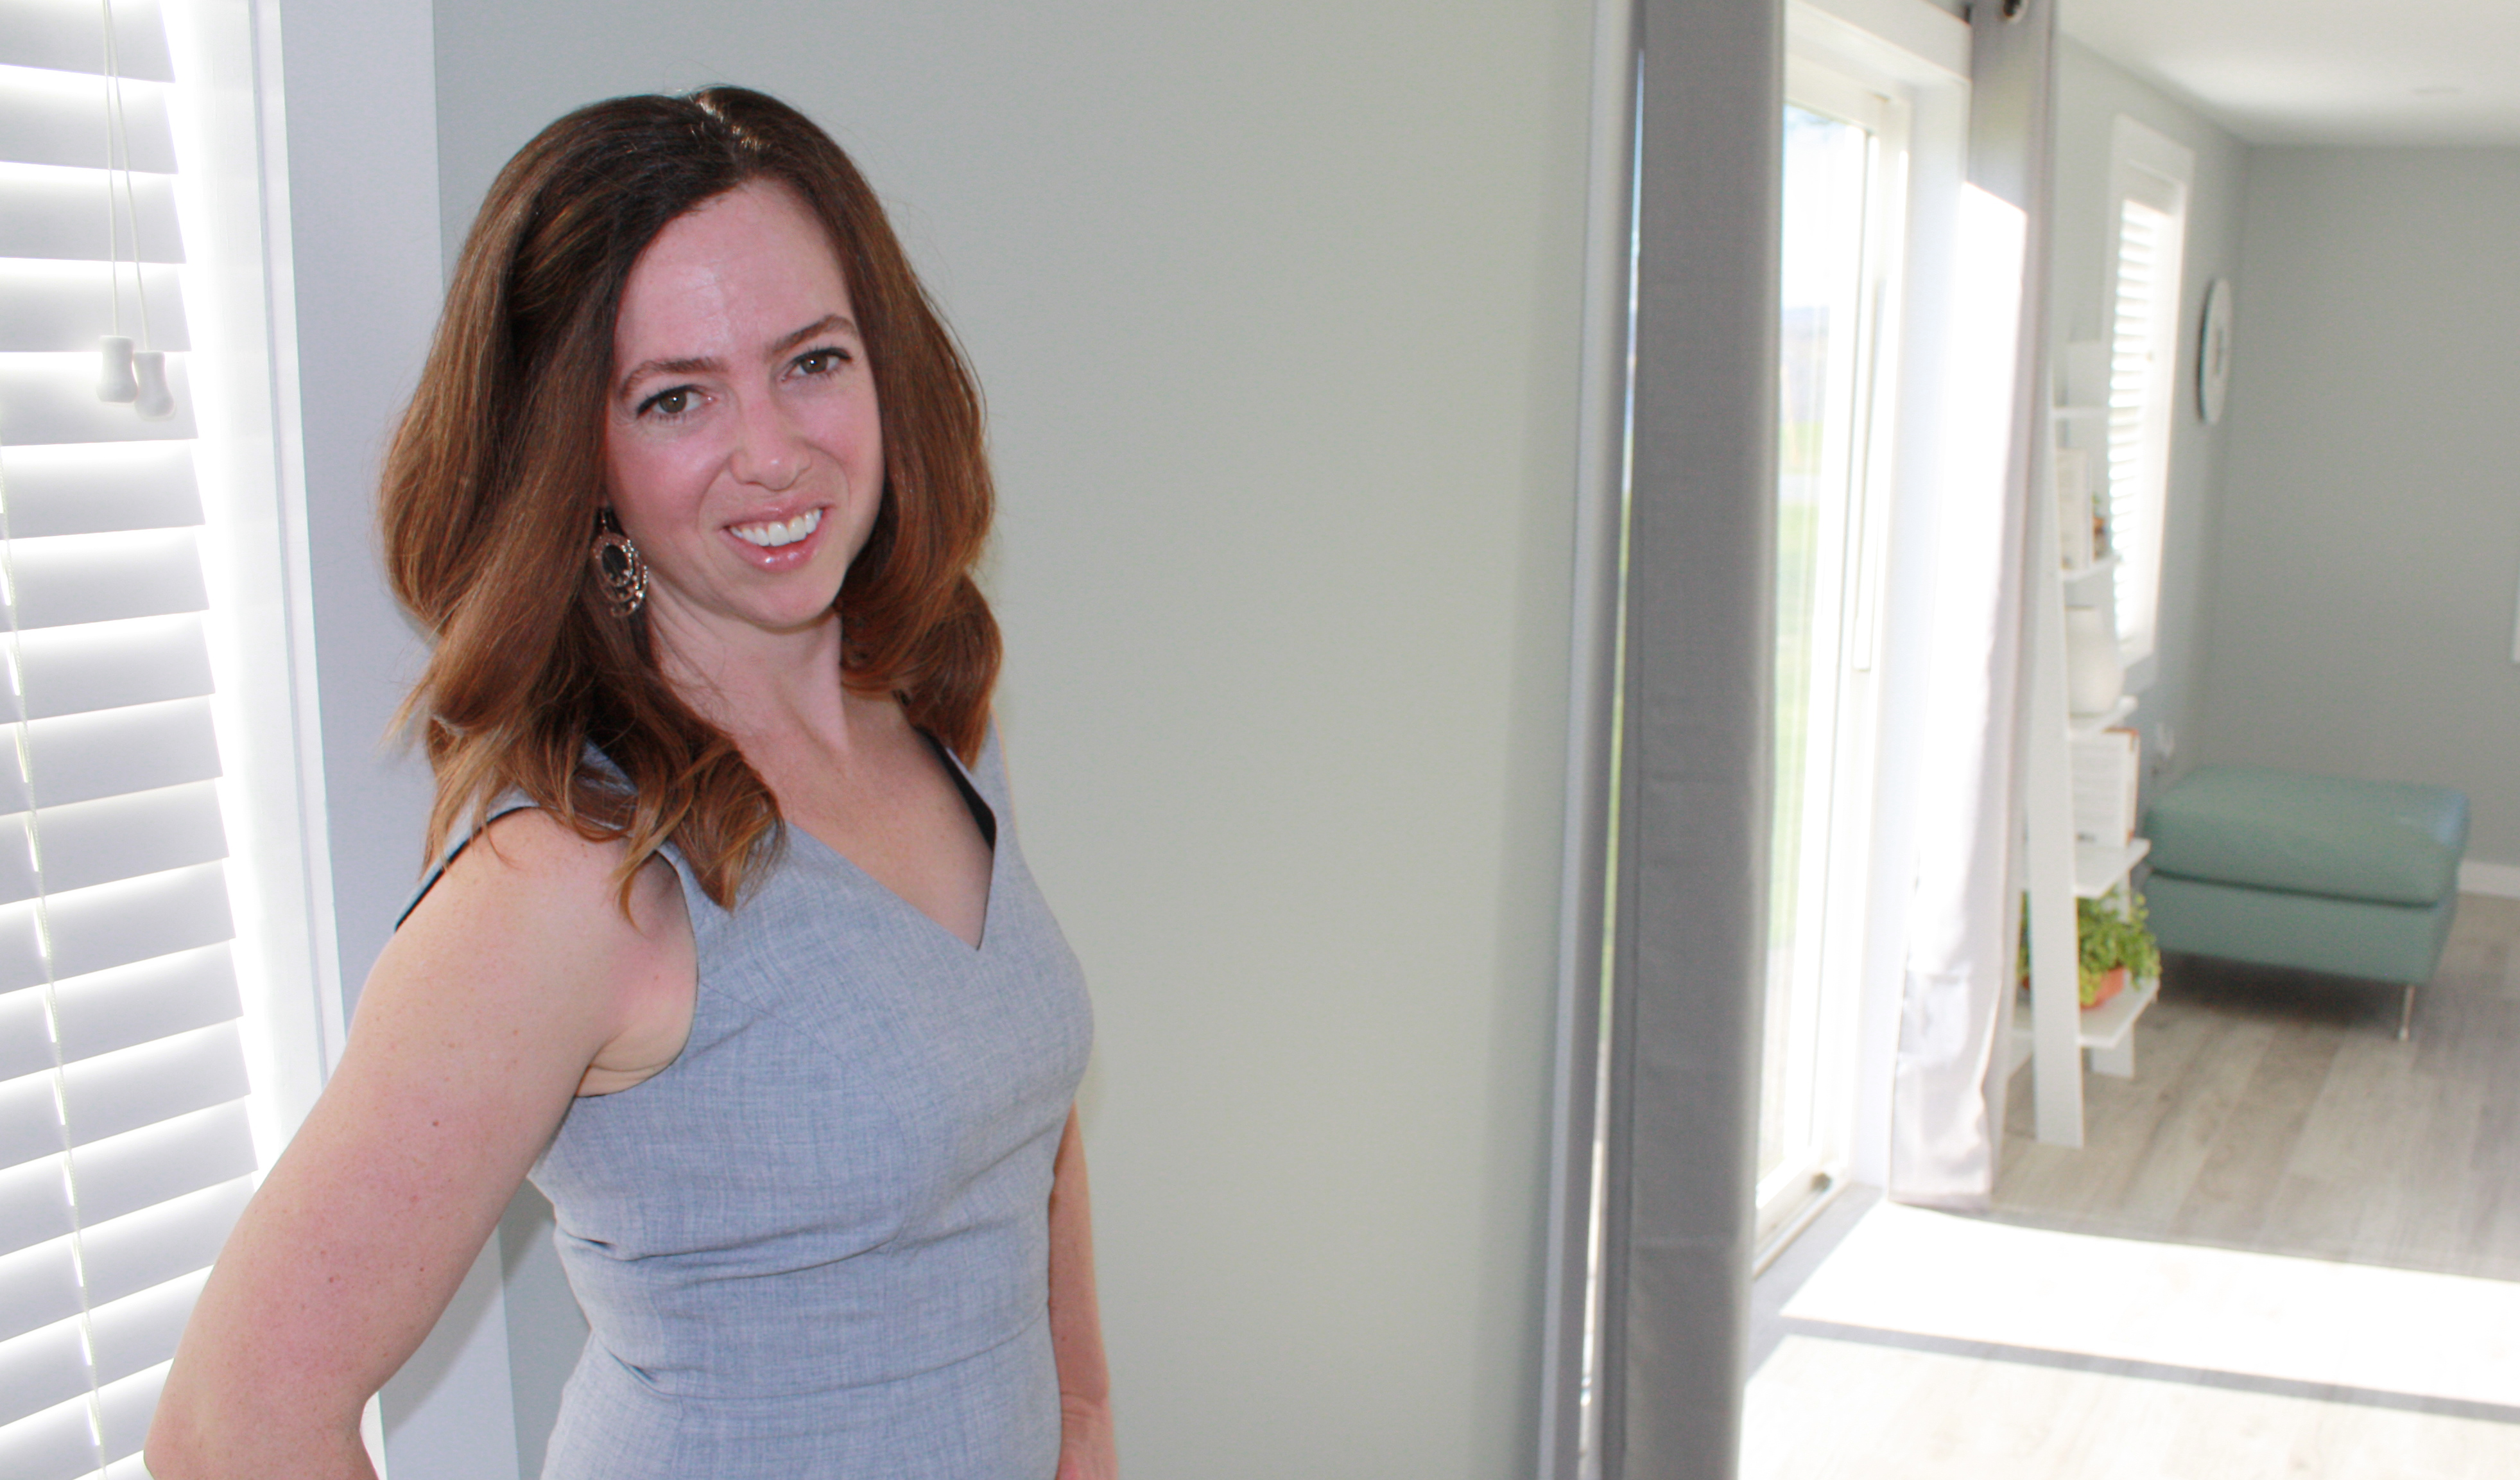 About Joscelyn Duffy_Communication Strategist to Executives and Entrepreneurs